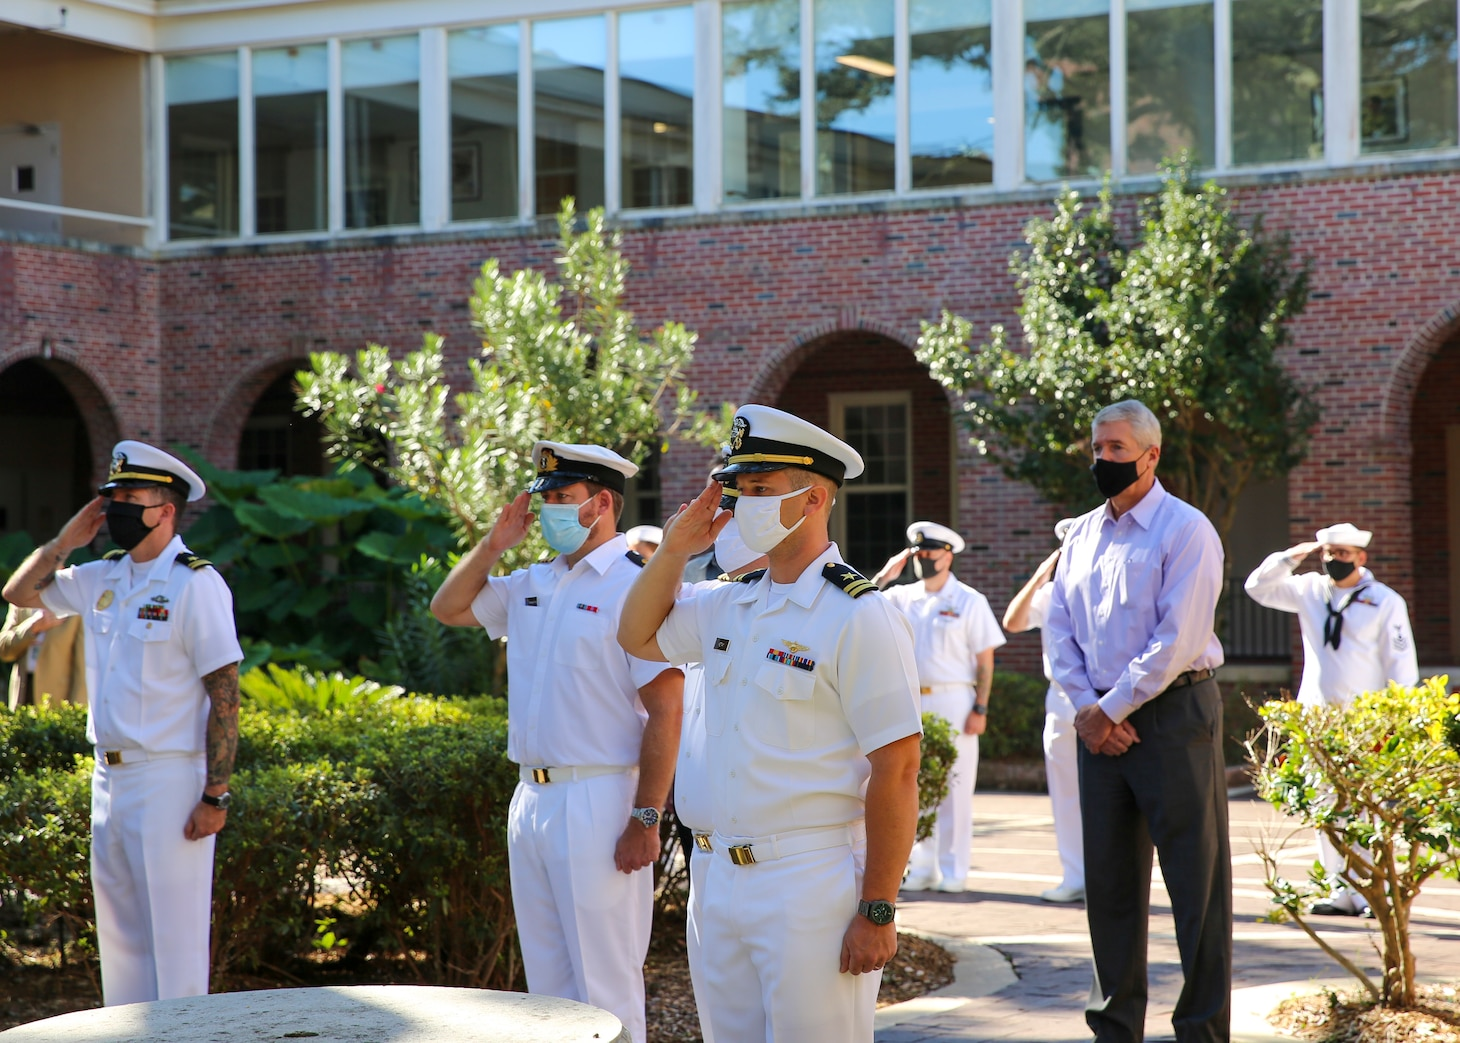 Naval Education and Training Command (NETC) staff members salute as tap plays at the end of a 9/11 memorial ceremony.